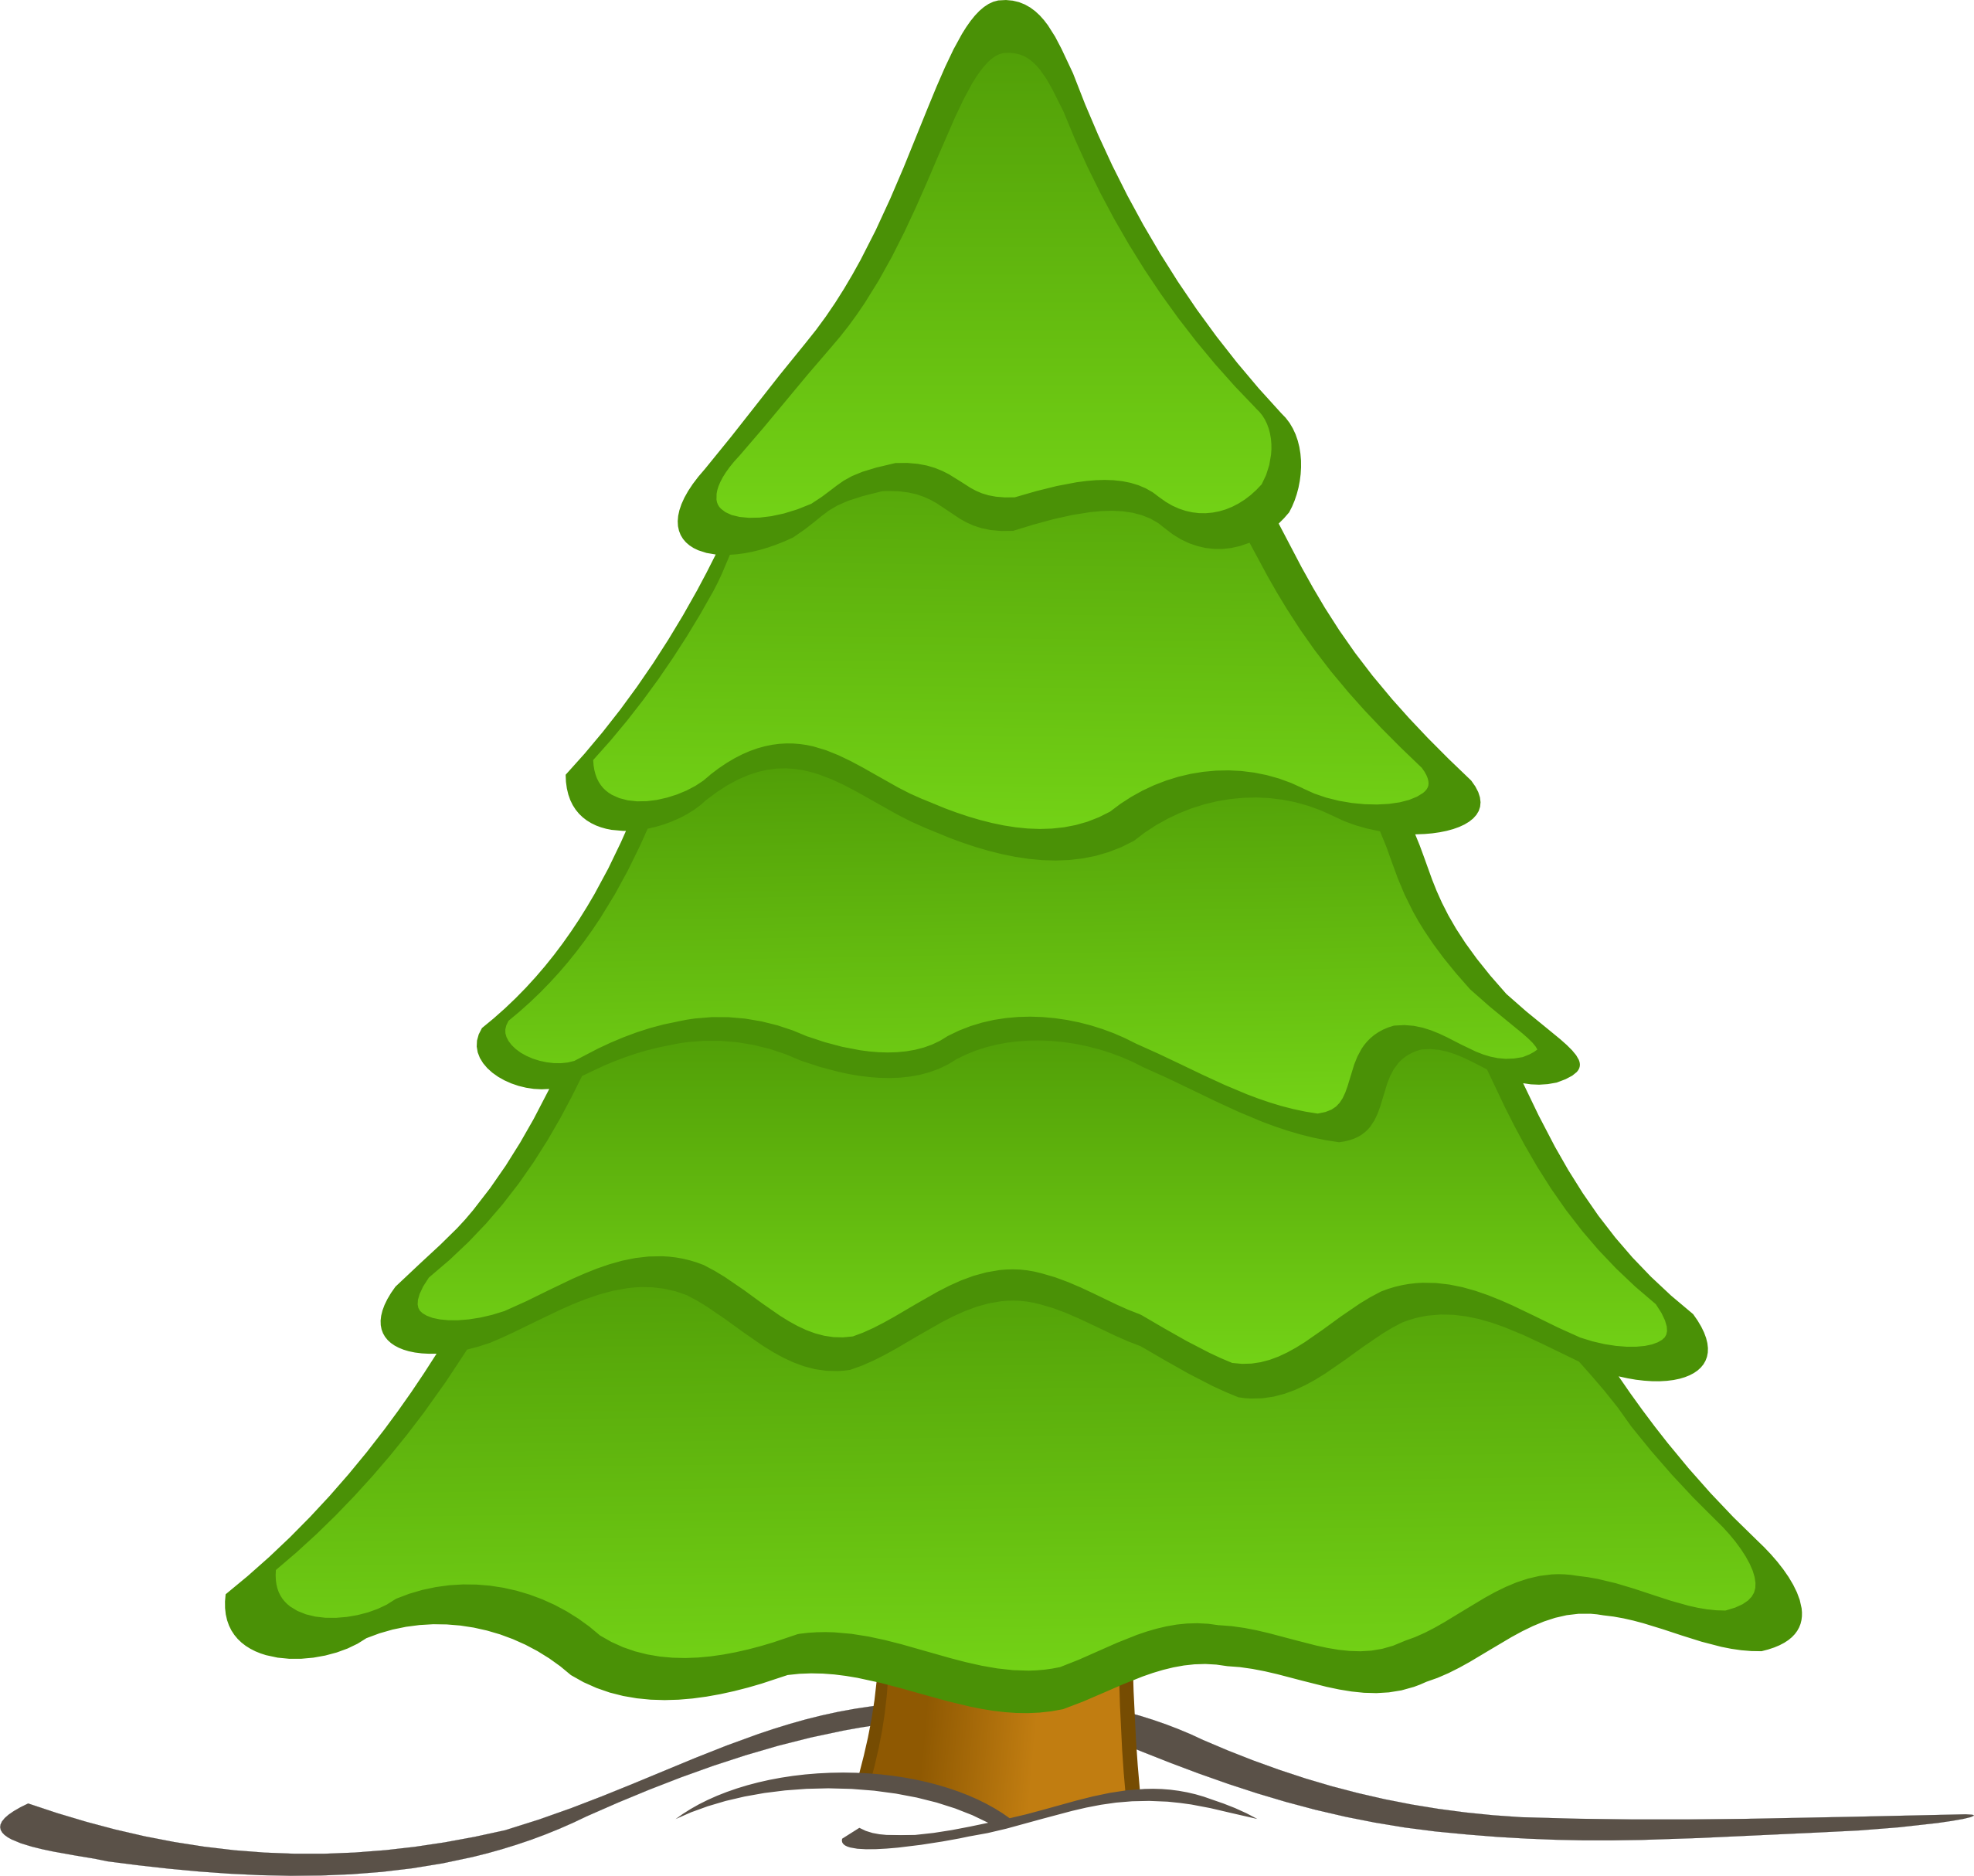 Chrstmas tree base clipart picture freeuse download Evergreen Tree Clipart | Free download best Evergreen Tree Clipart ... picture freeuse download